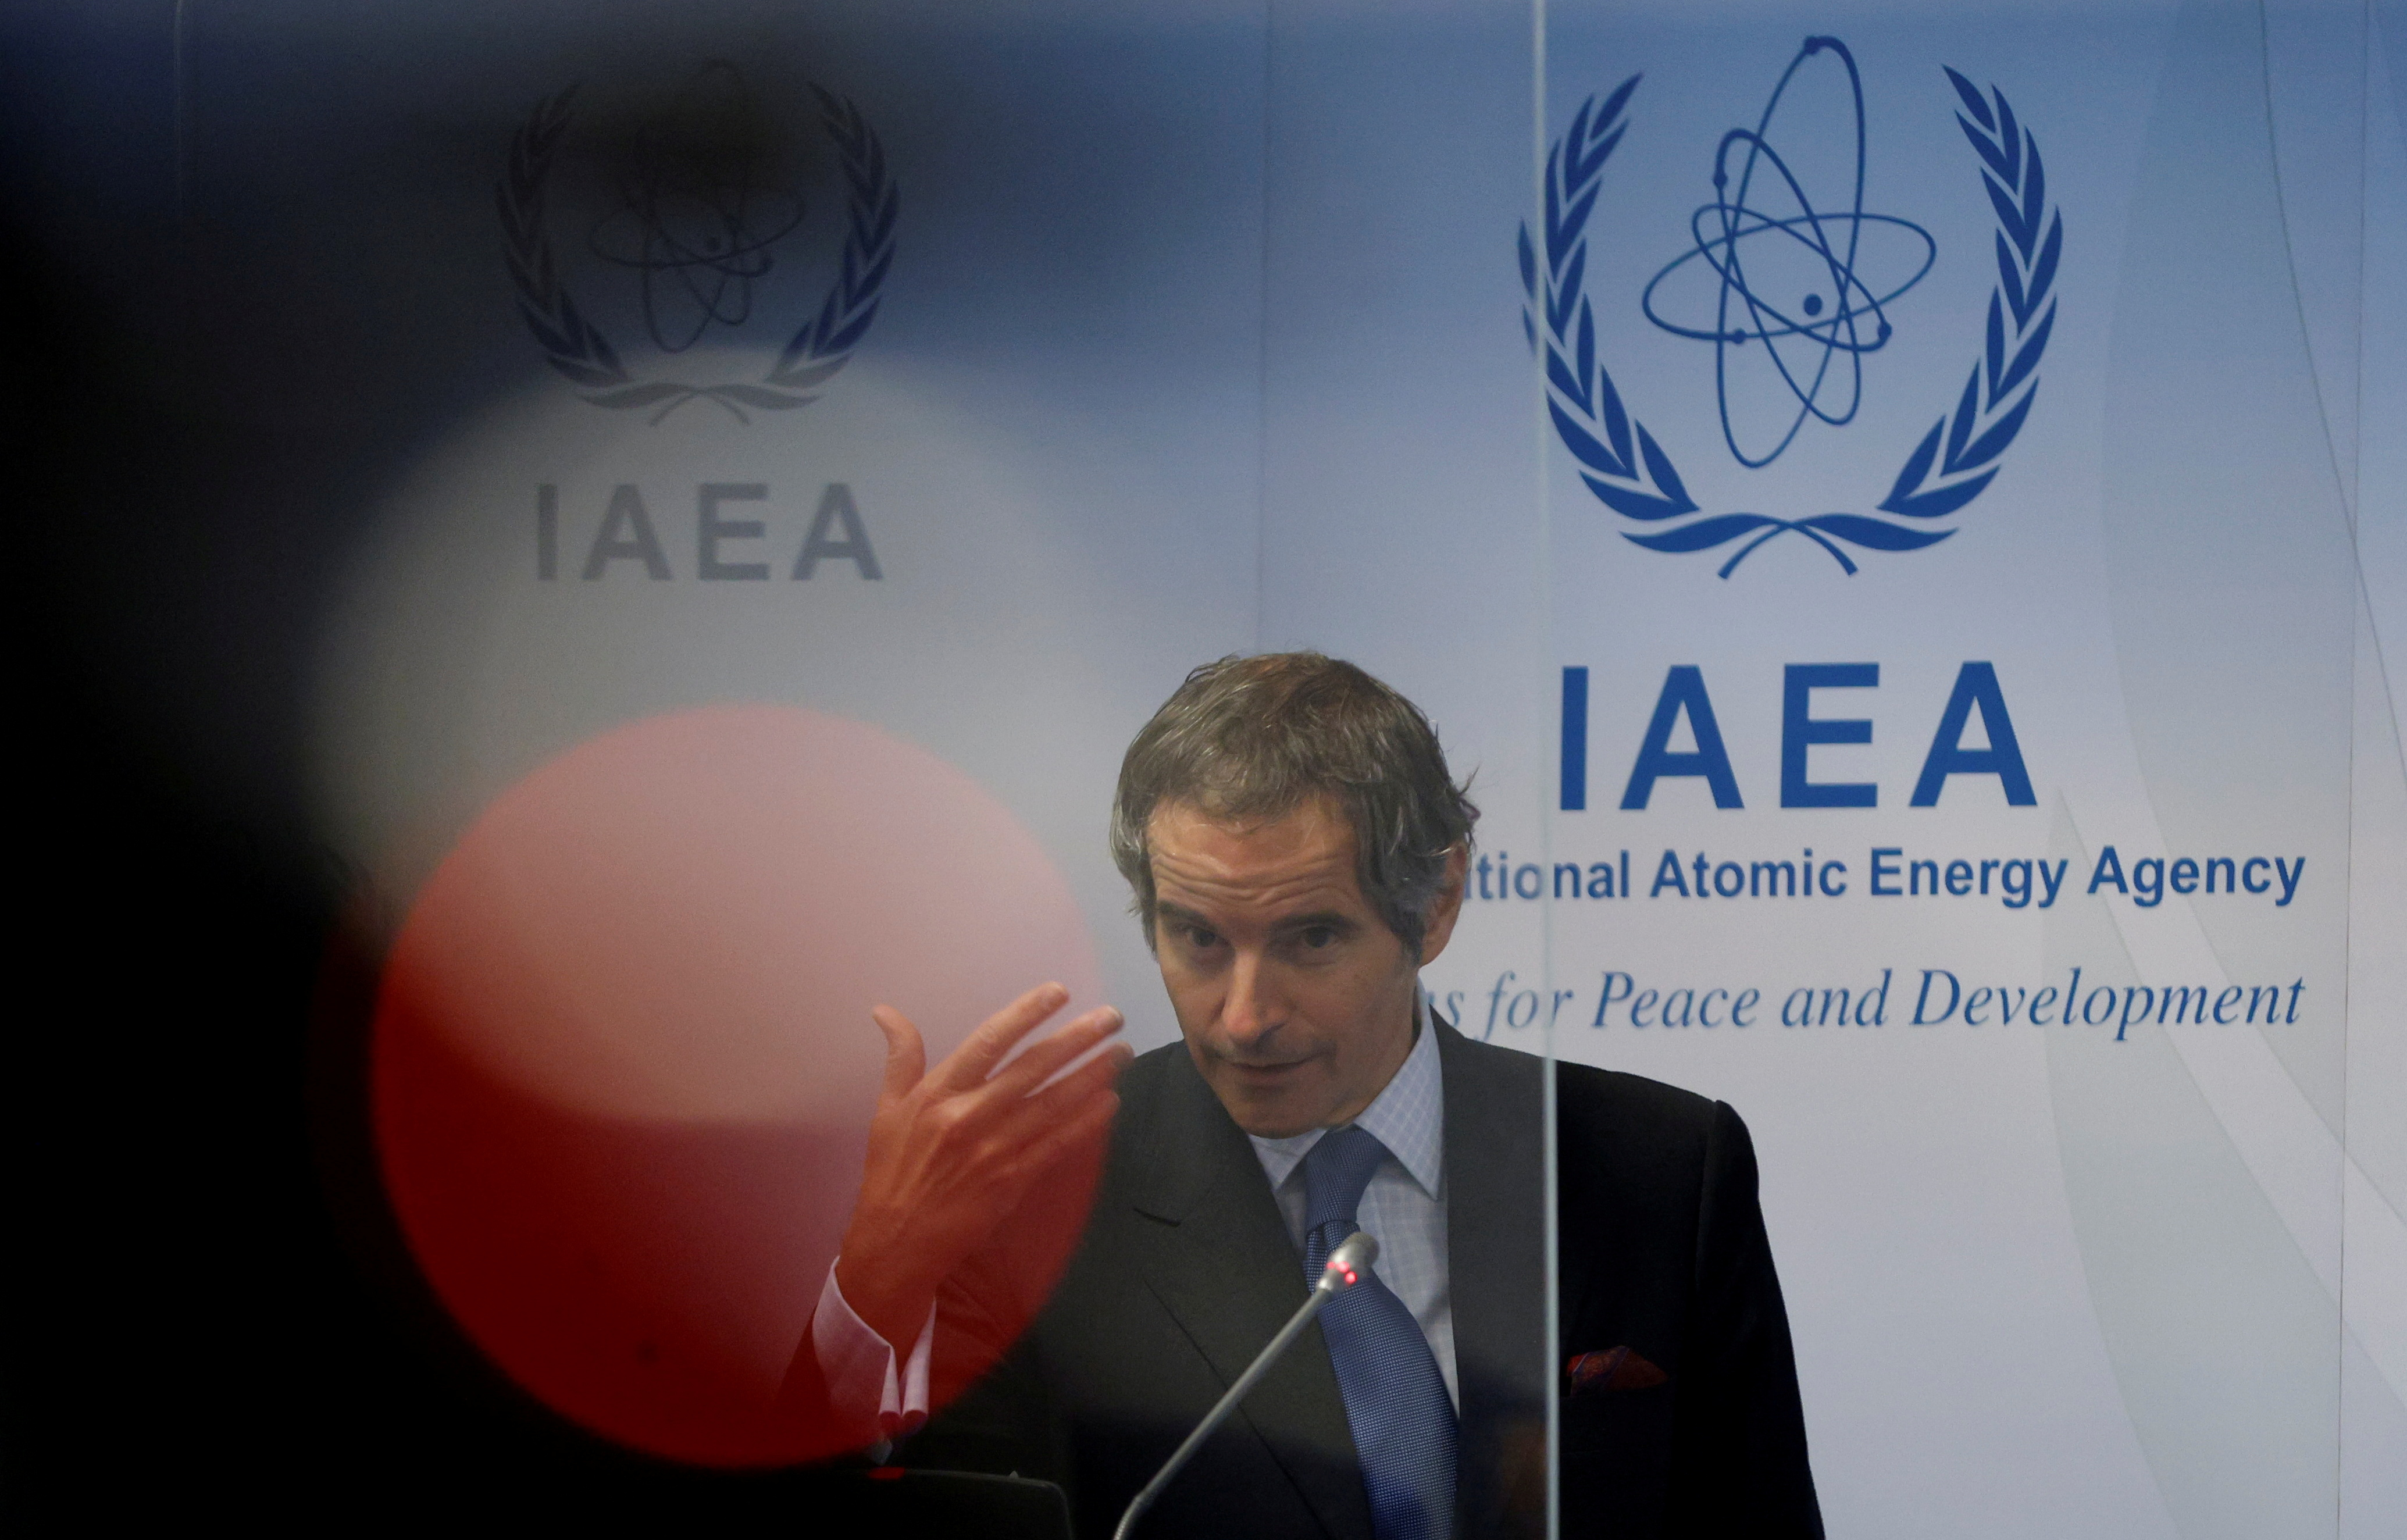 International Atomic Energy Agency (IAEA) Director General Rafael Grossi attends a news conference during a board of governors meeting at the IAEA headquarters in Vienna, Austria, June 7, 2021.   REUTERS/Leonhard Foeger